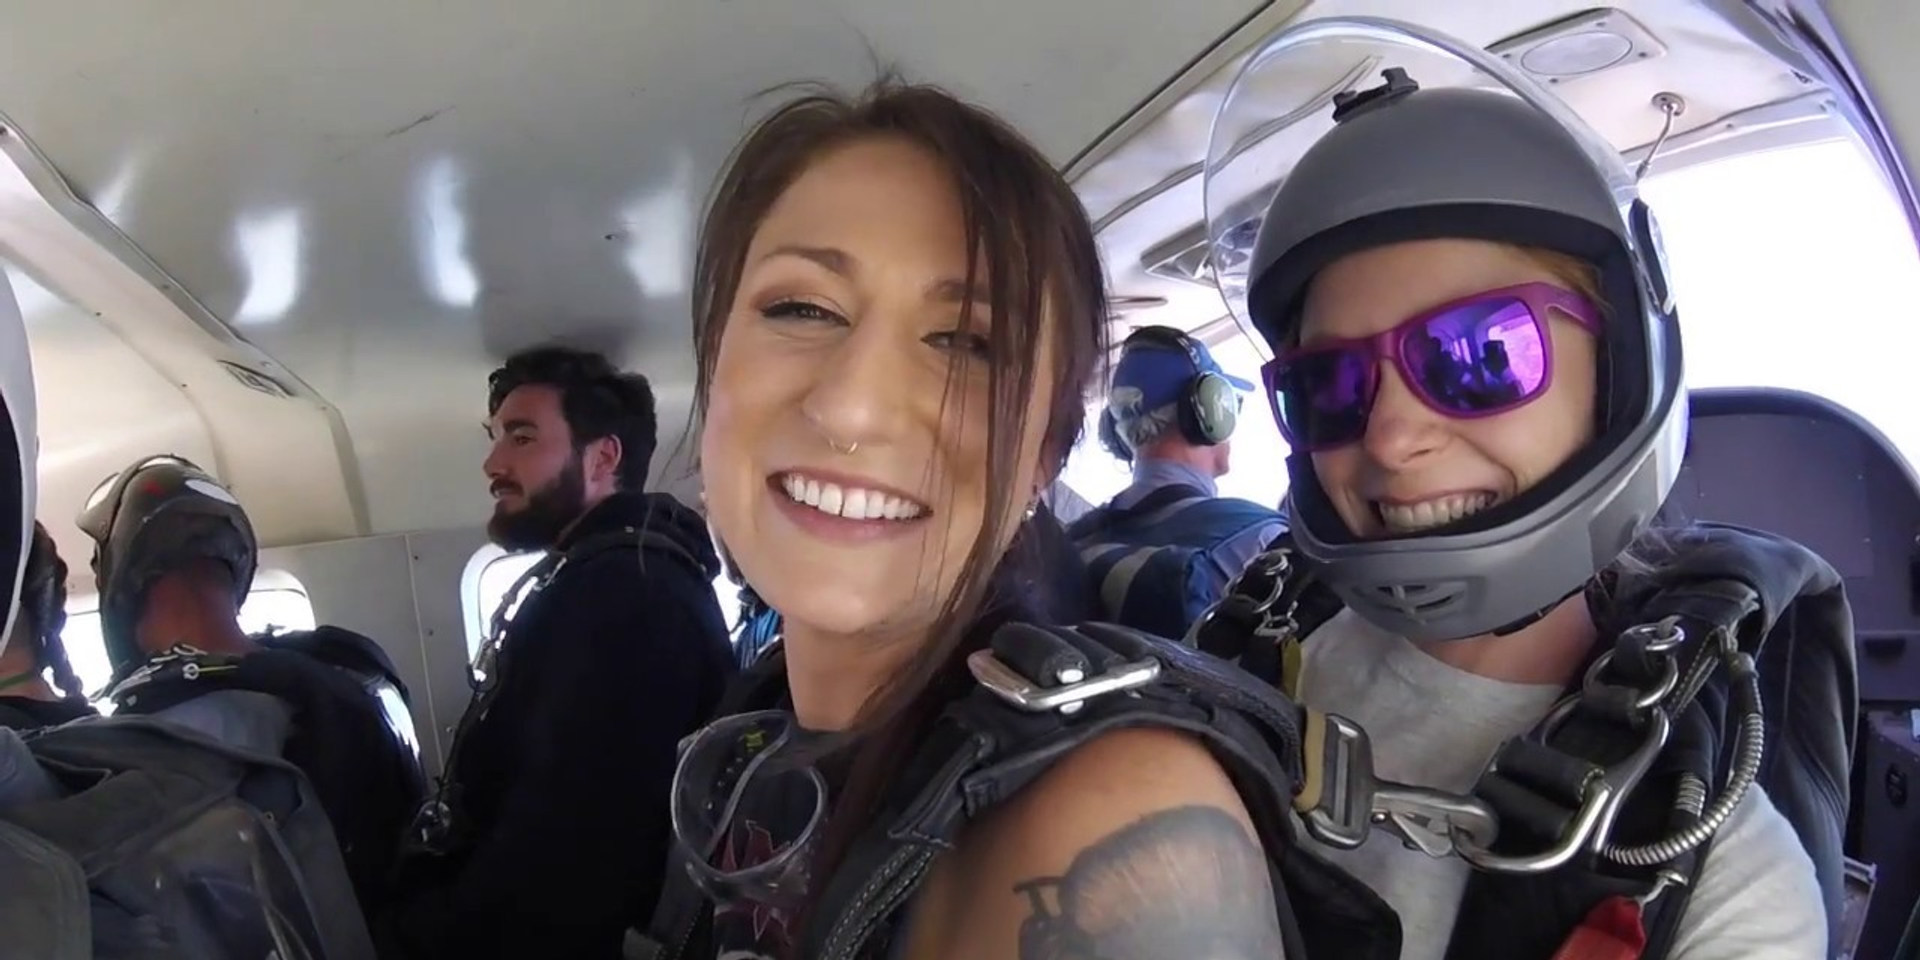 Skydive Hollister Jumps June 1-4 2018   Skydiving in California, Coastal Views, Bay Area Experience